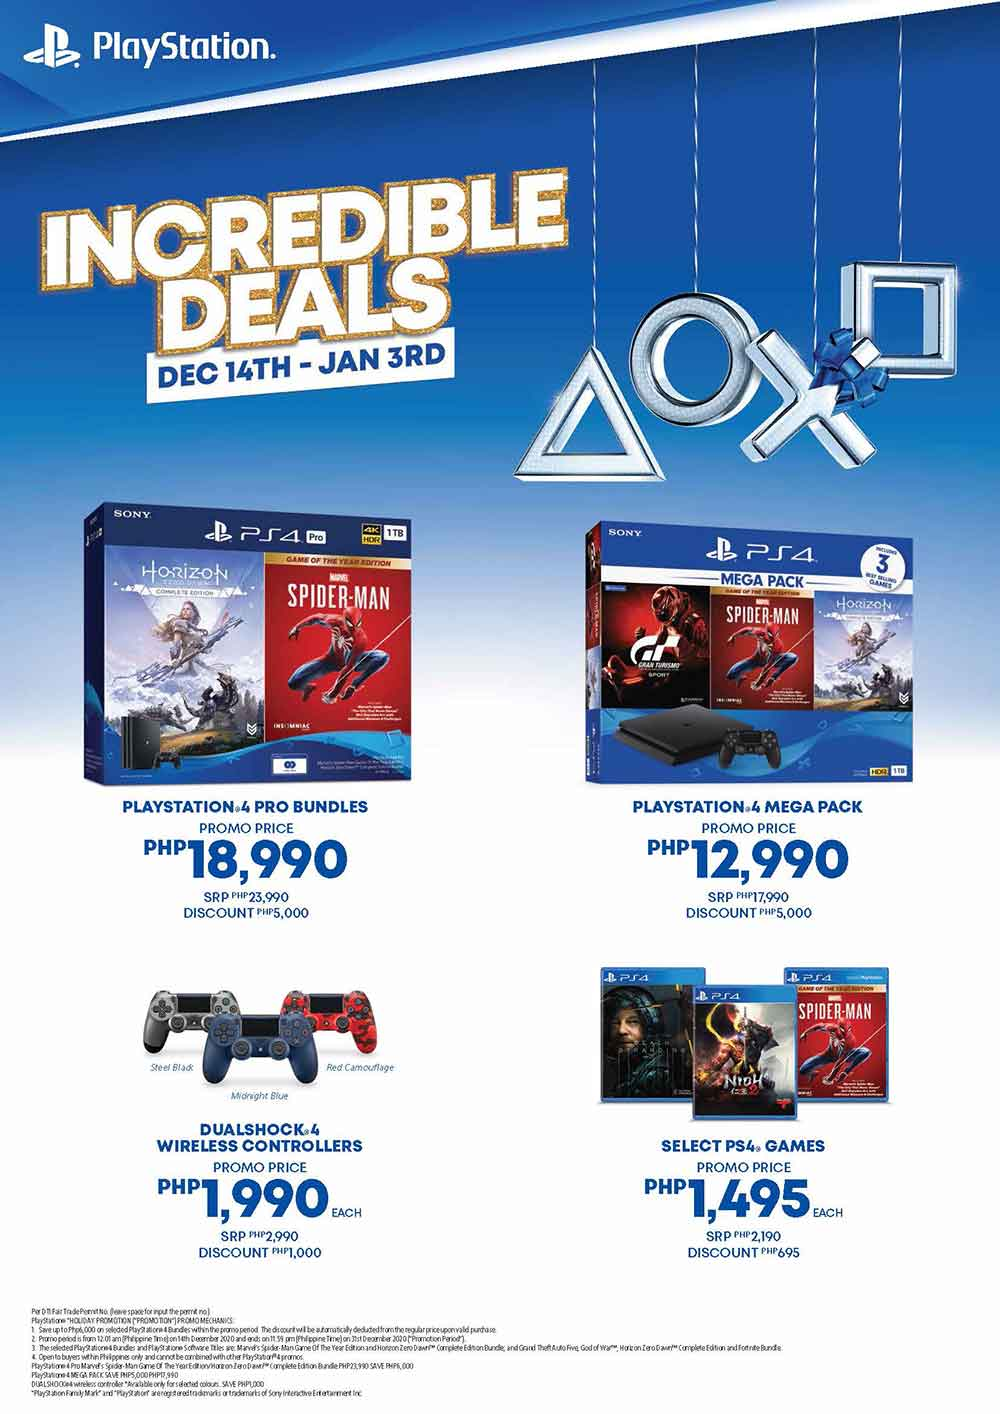 Get The PlayStation 4 at a Discounted Price During the Incredible Deals 2020